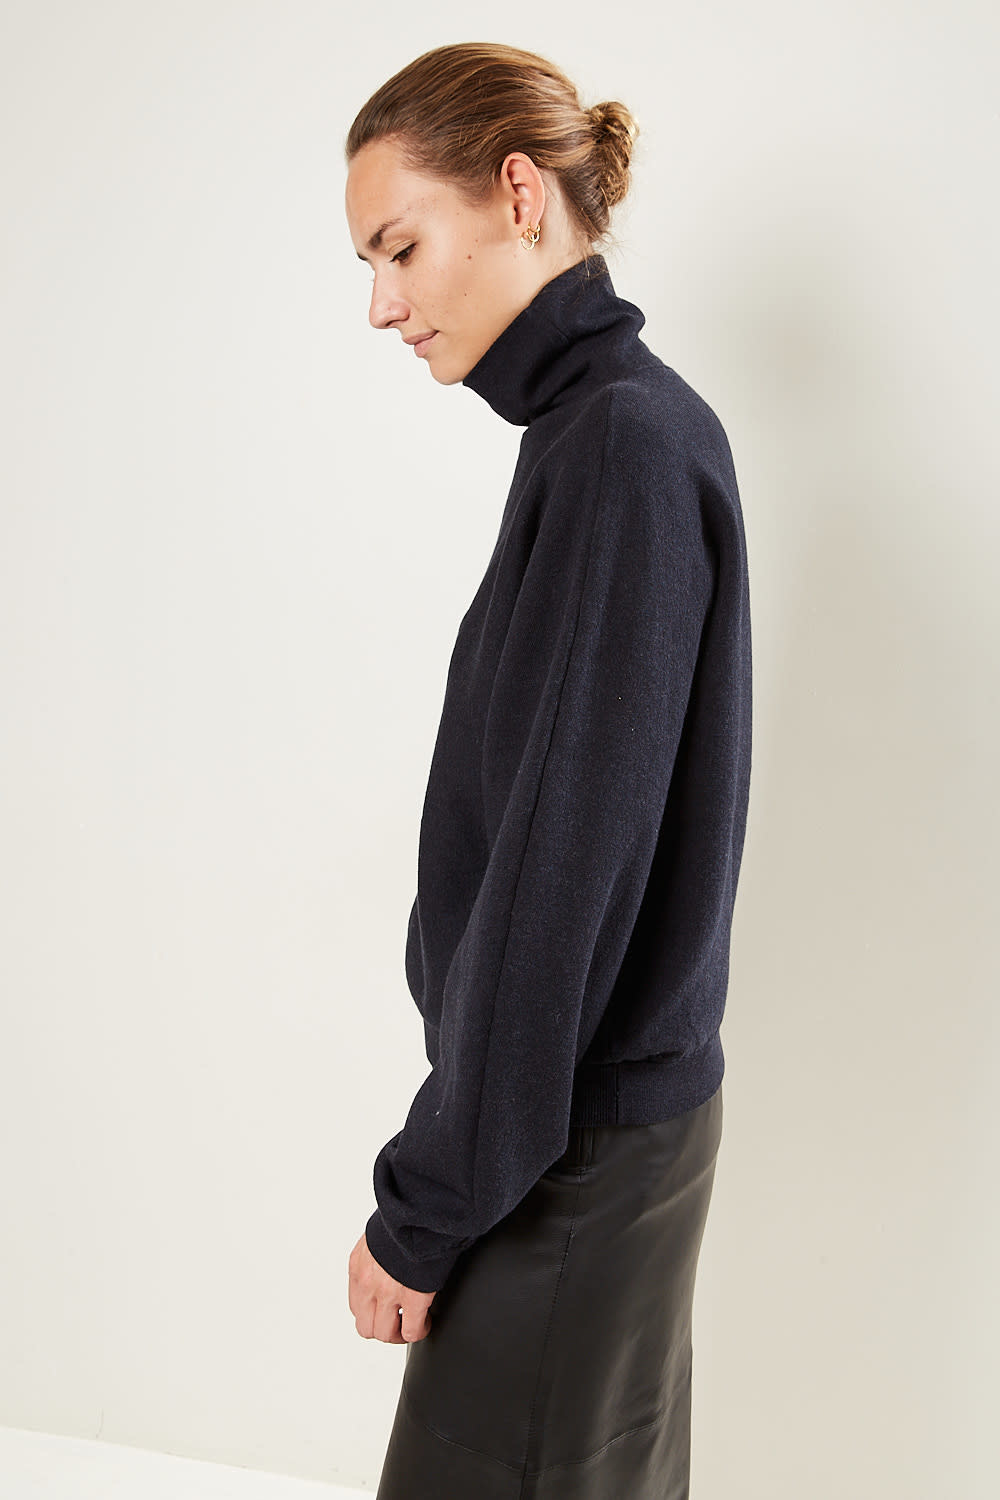 Humanoid Resi rest turtleneck sweather